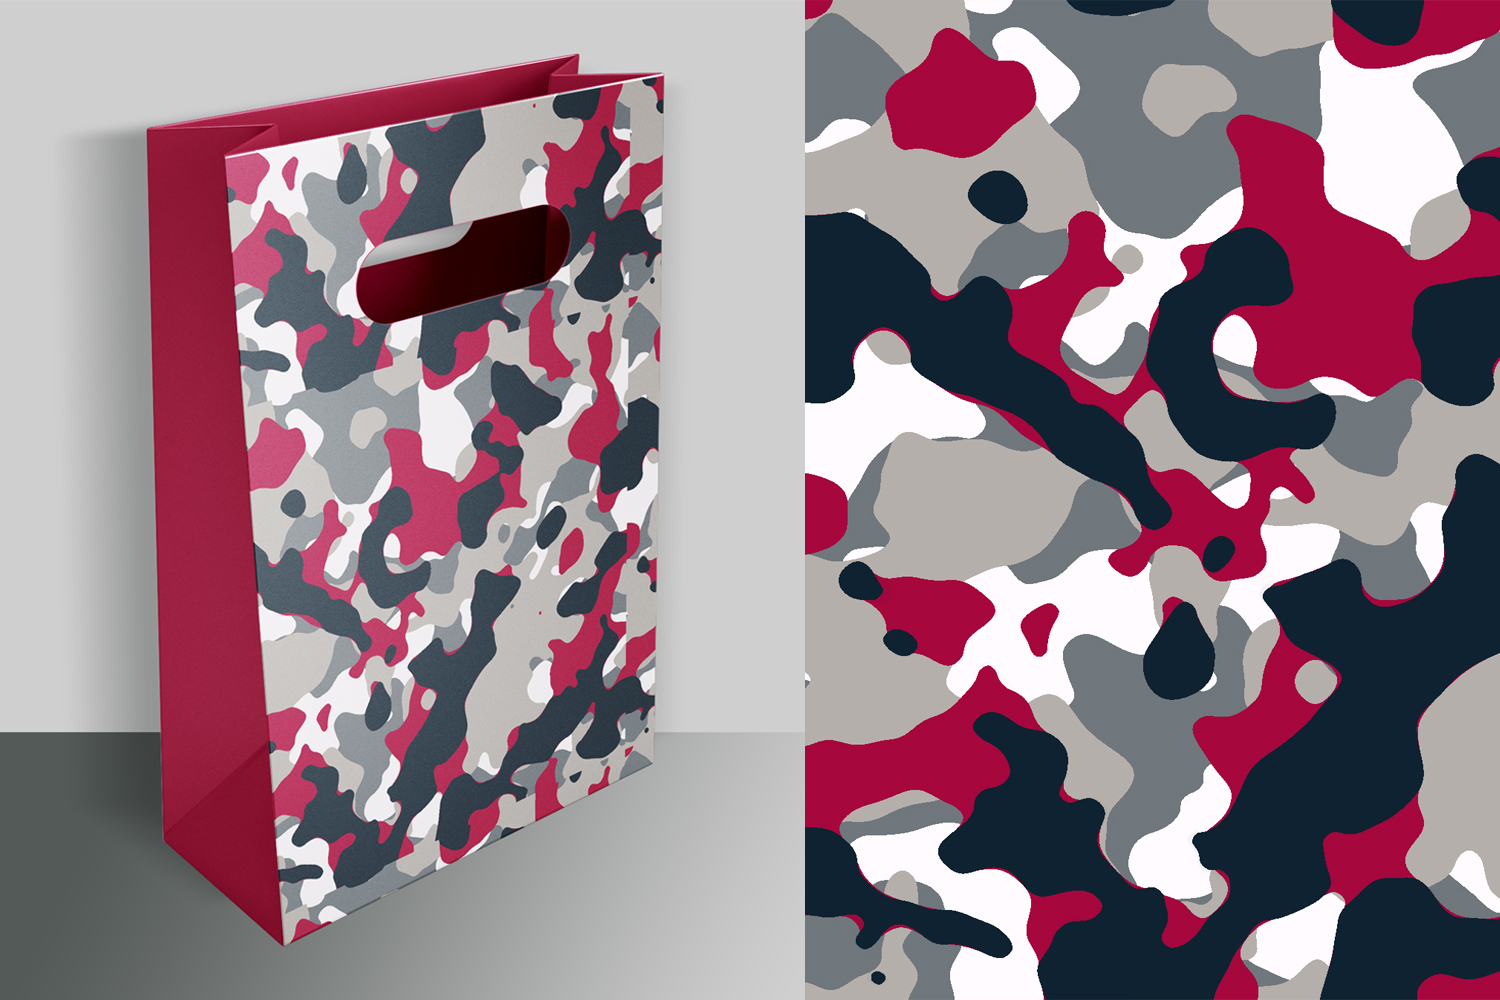 40 Alternative Camouflage Paper Designs example image 3